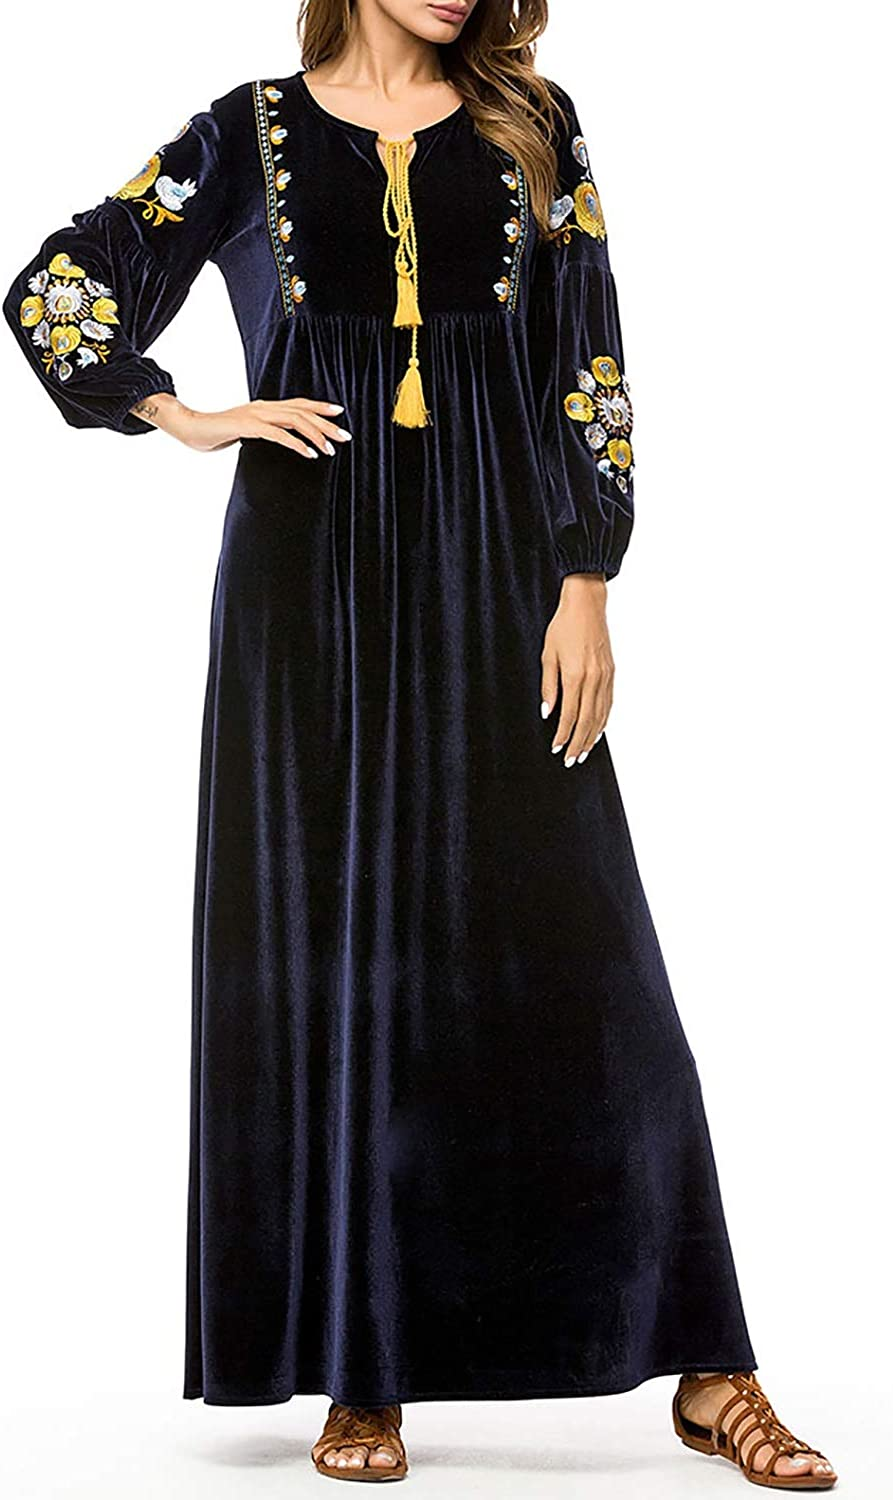 CEFULTY Women's ONeck Floral Embroidery Velvet Long Dress with Tassel Tie (color   Navy, Size   M)